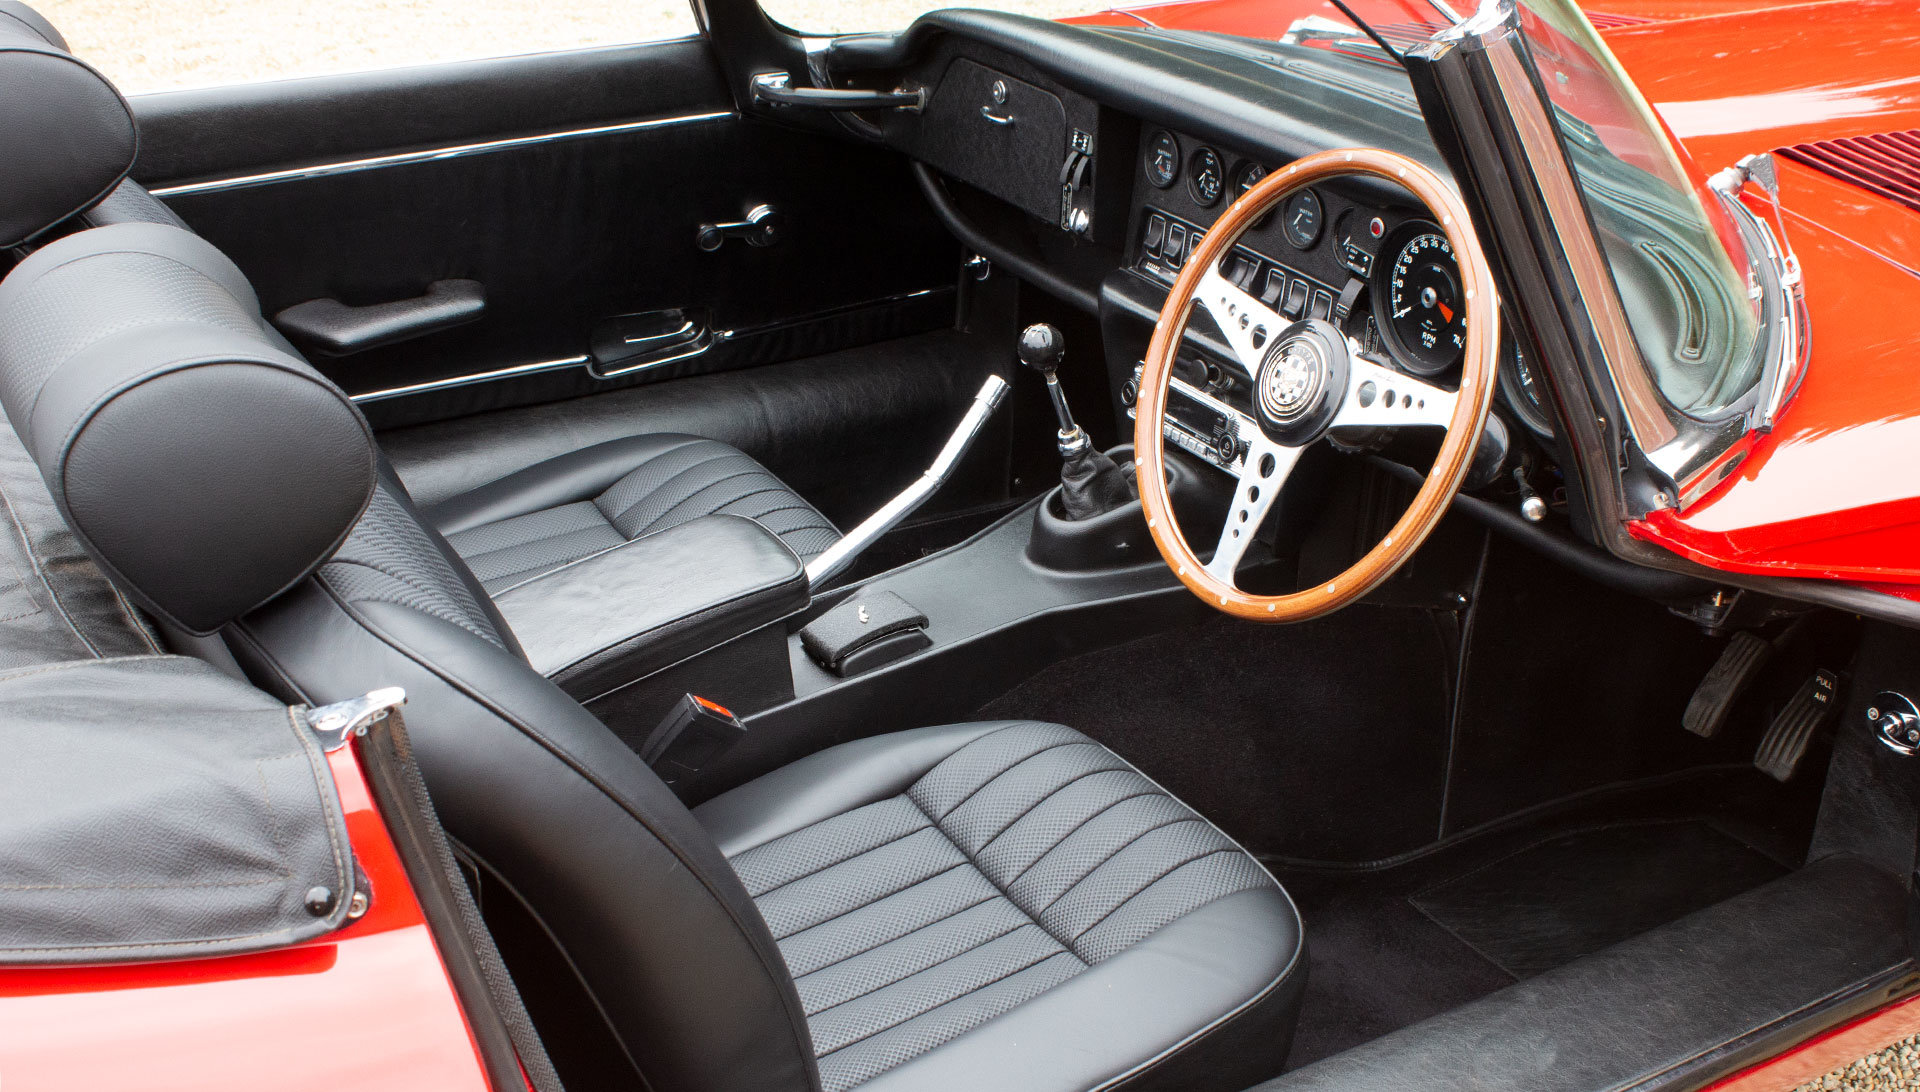 1973 Jaguar E-Type Series 3 V12 Open Two Seater SOLD (picture 4 of 6)